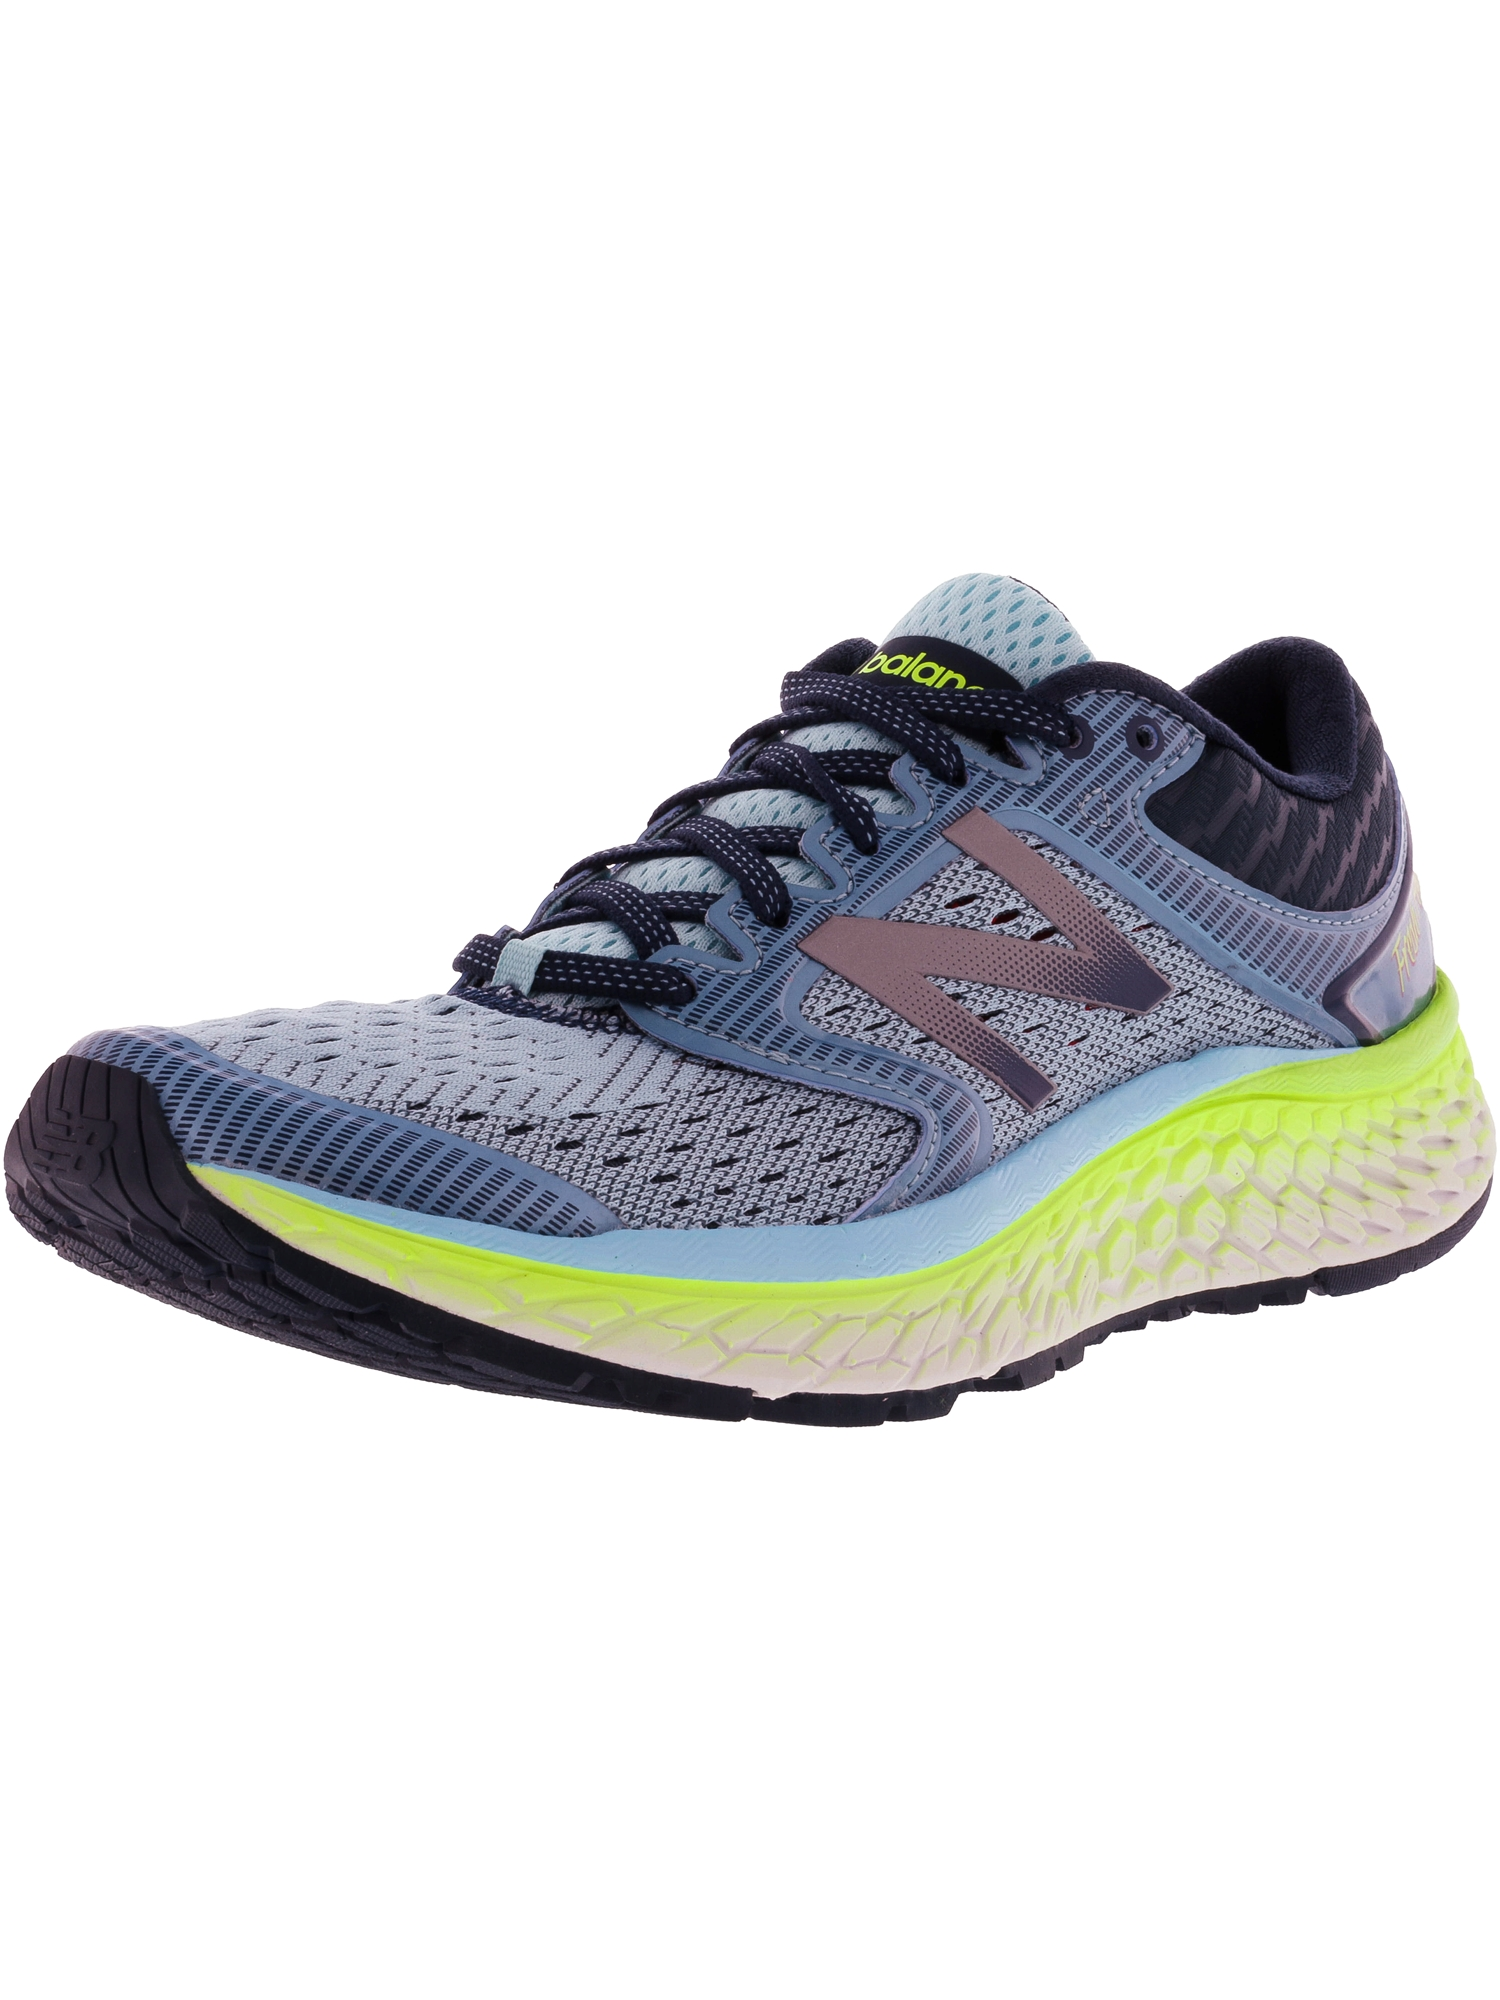 New Balance Women's W1080 By7 Ankle-High Running Shoe - 7.5N